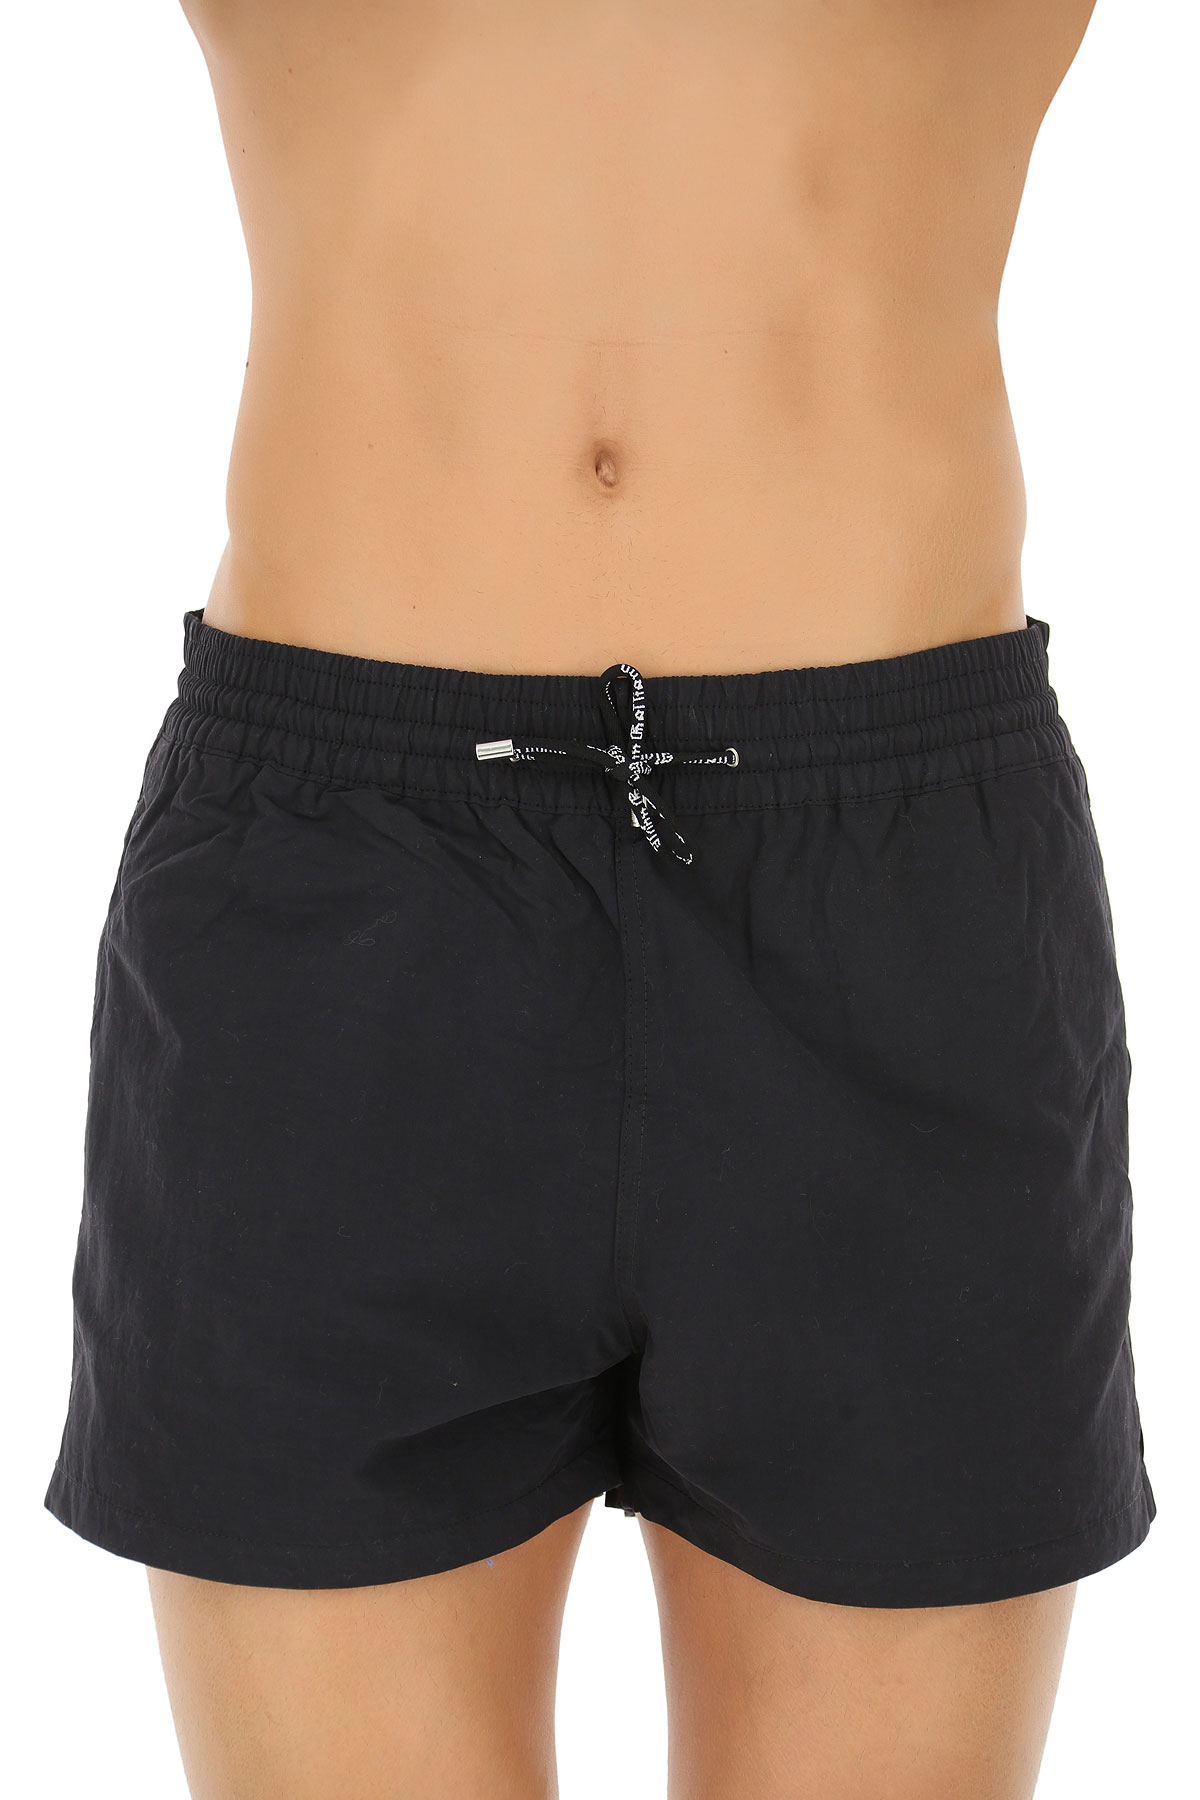 Image of Galliano Mens Swimwear On Sale in Outlet, Black, polyester, 2017, M (EU 48) L (EU 50)